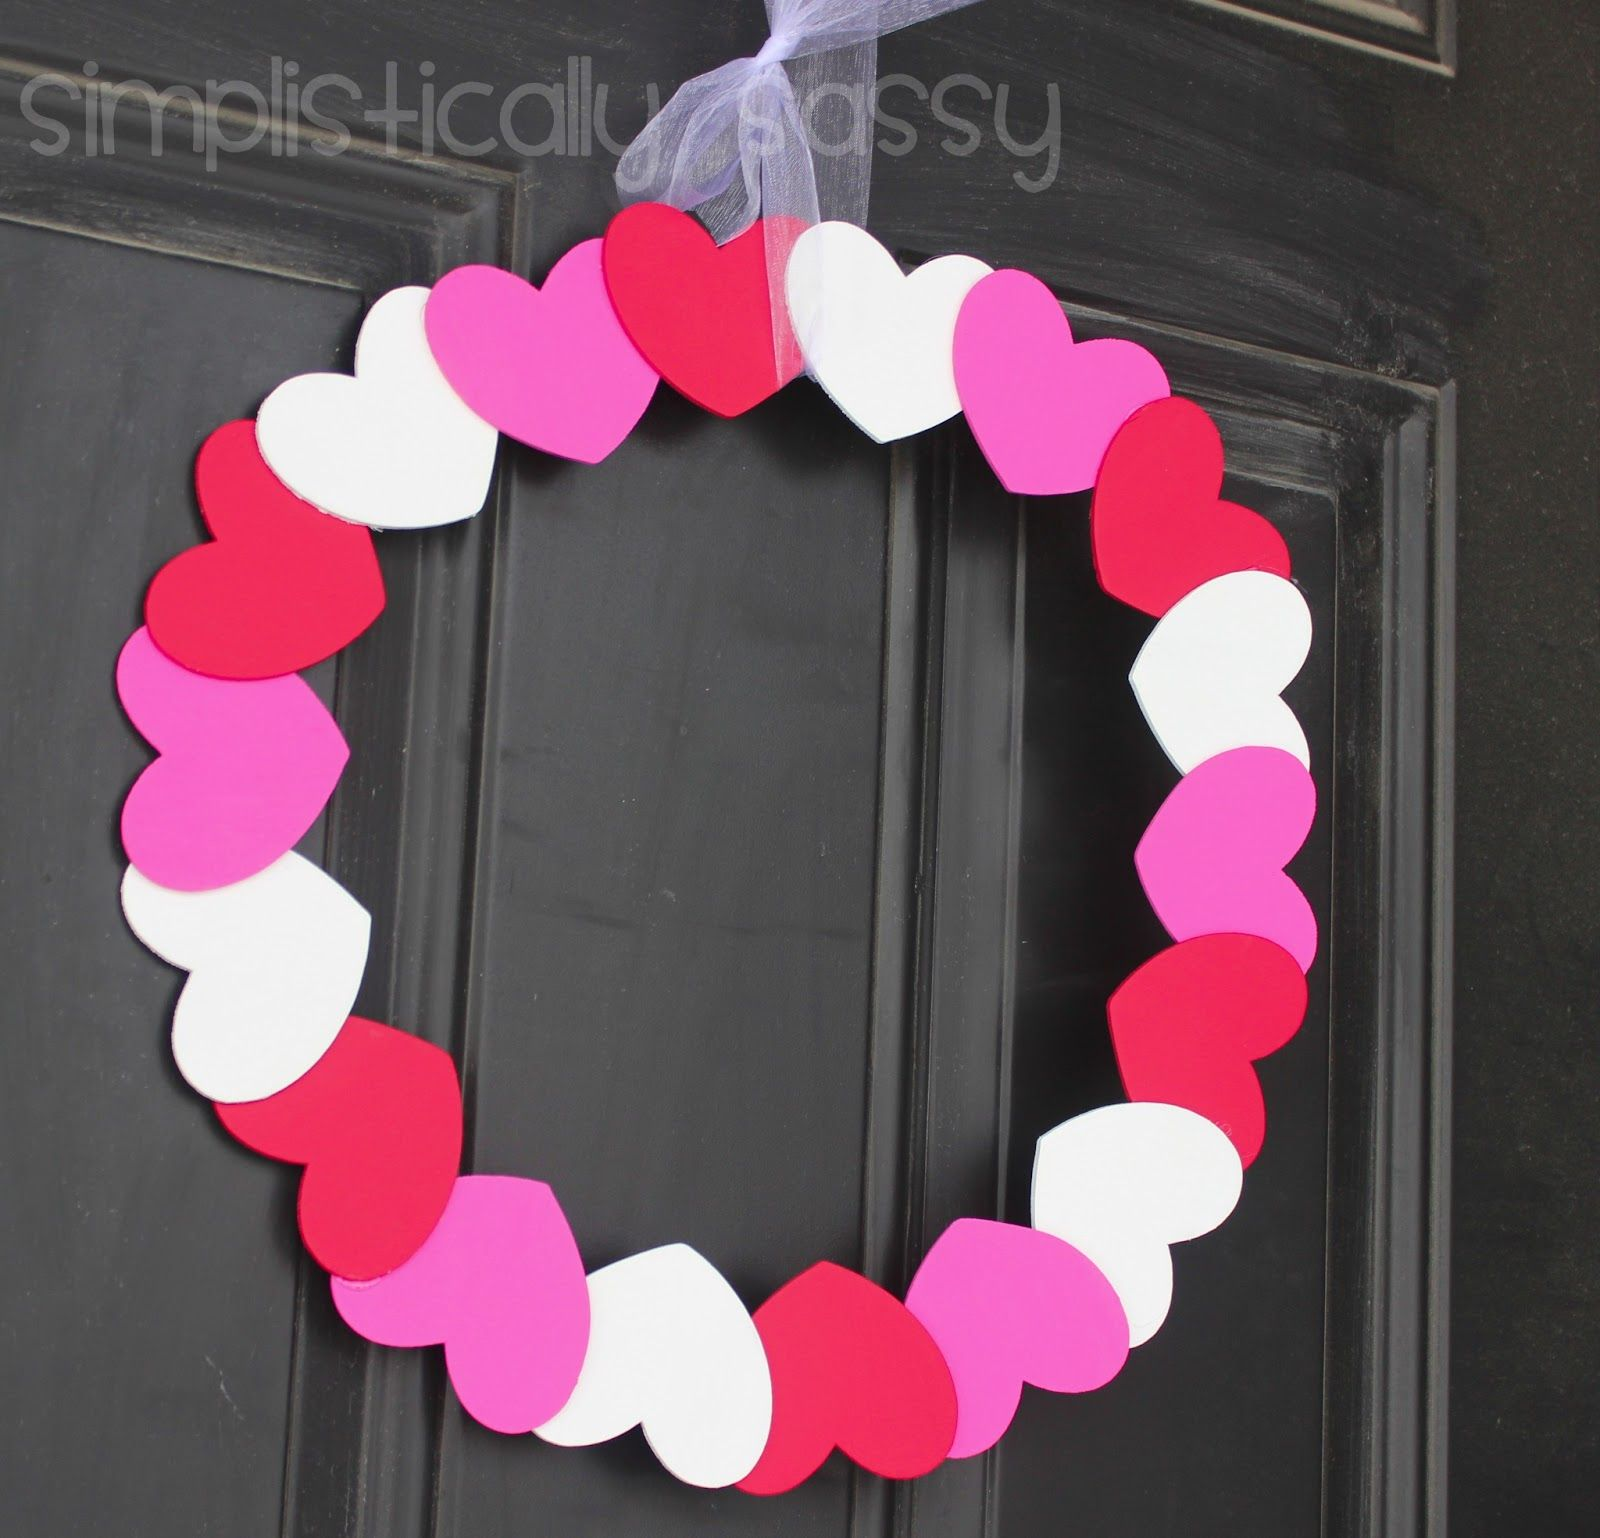 house holidaysmart s your decor valentine dsc diy articles for day valentines decorations